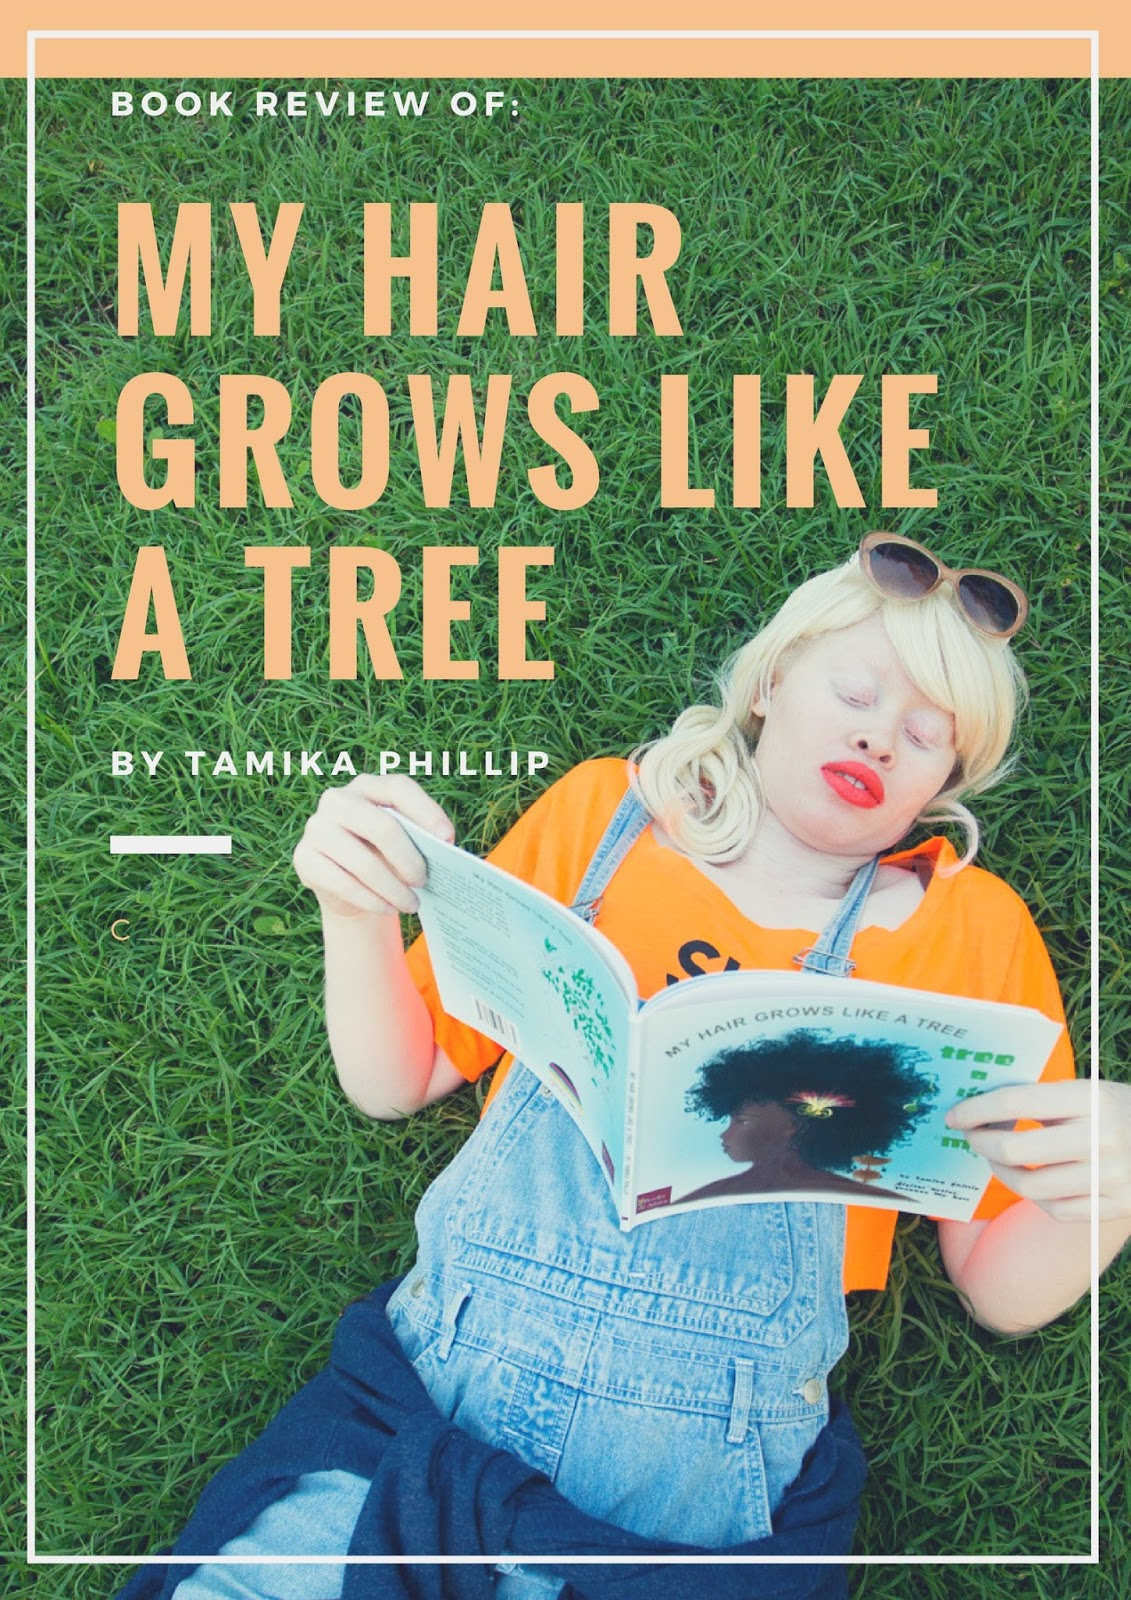 Book Review :: My Hair Grows Like A Tree by Tamika Phillip